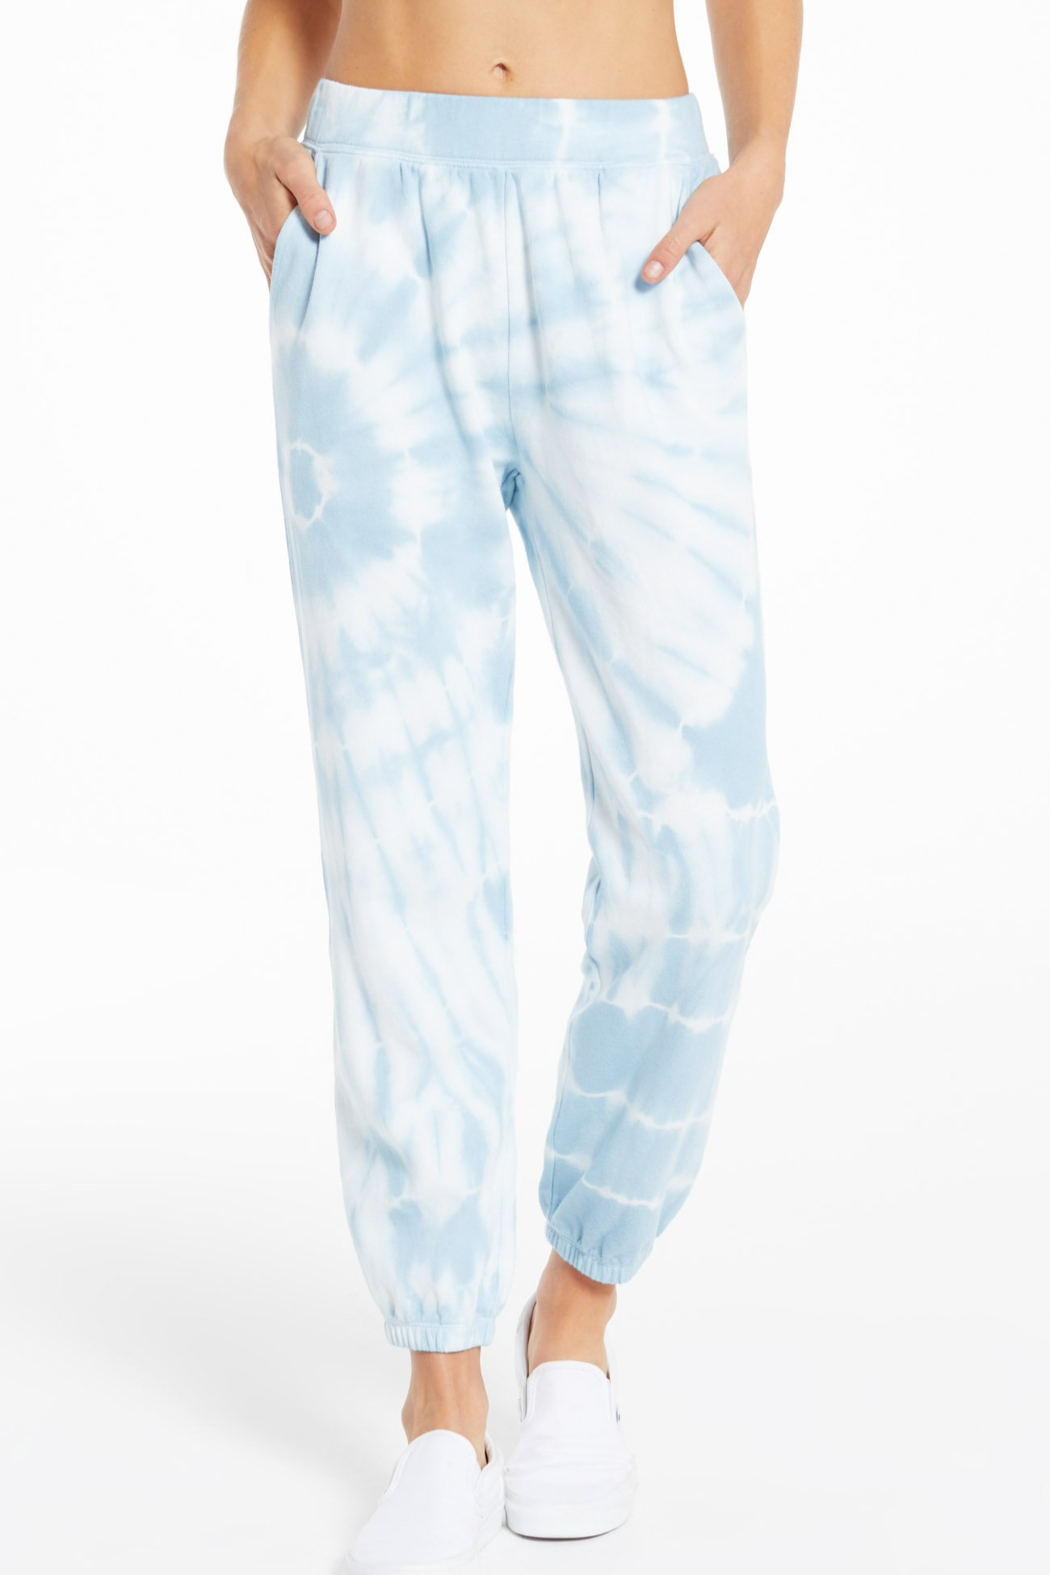 z supply Emery Spiral Tie-Dye Jogger - Front Cropped Image